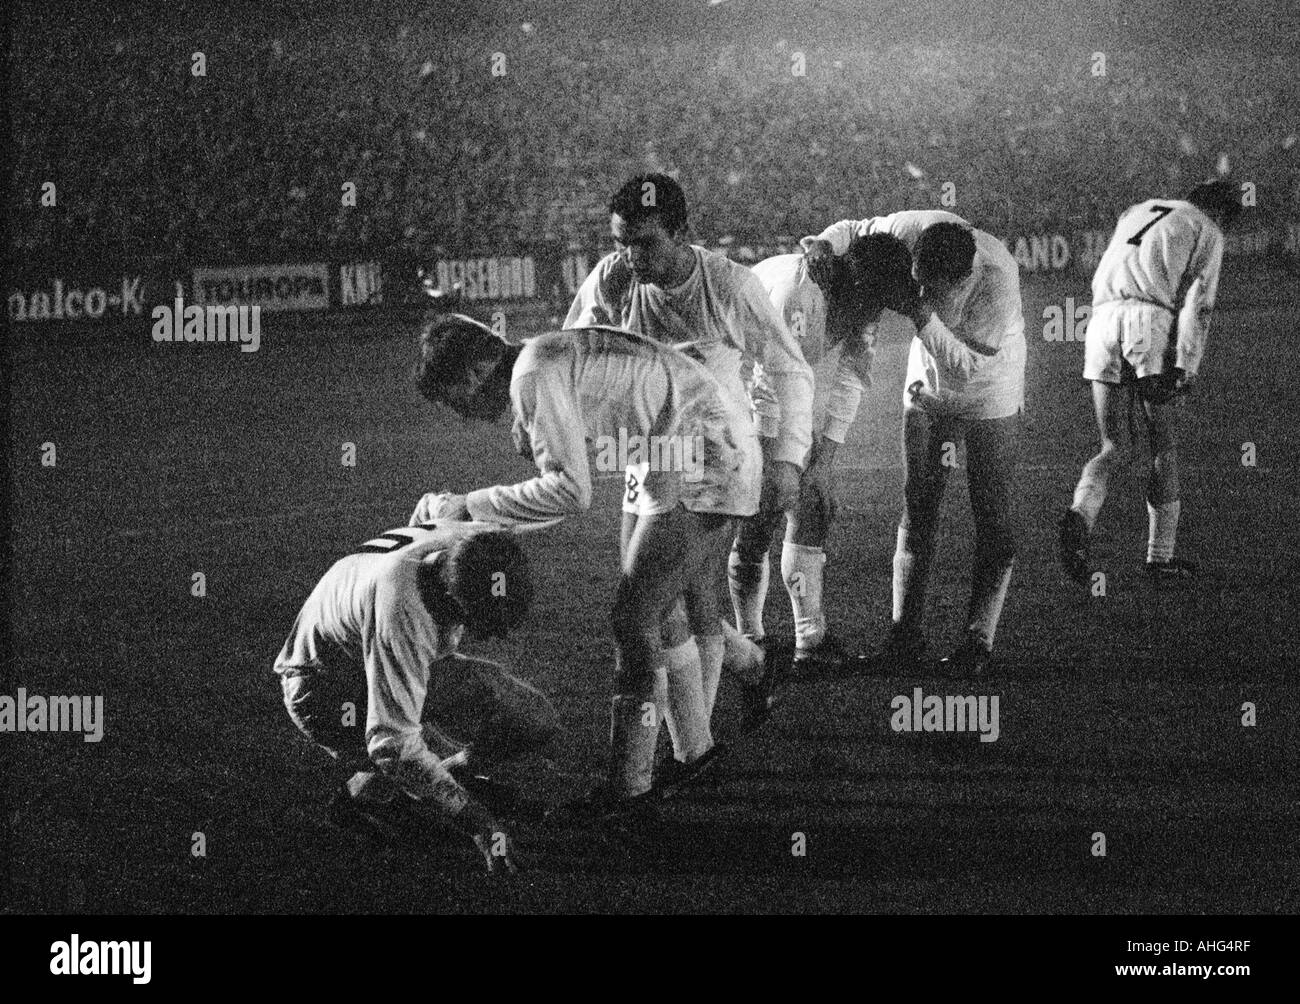 football, Bundesliga, 1967/1968, Muengersdorfer Stadium in Cologne, 1. FC Cologne versus Borussia Moenchengladbach 2:5, football players, f.l.t.r. Guenter Netzer, Klaus Ackermann, Herbert Laumen, Peter Meyer, Egon Milder, Herbert Wimmer (all MG) - Stock Image